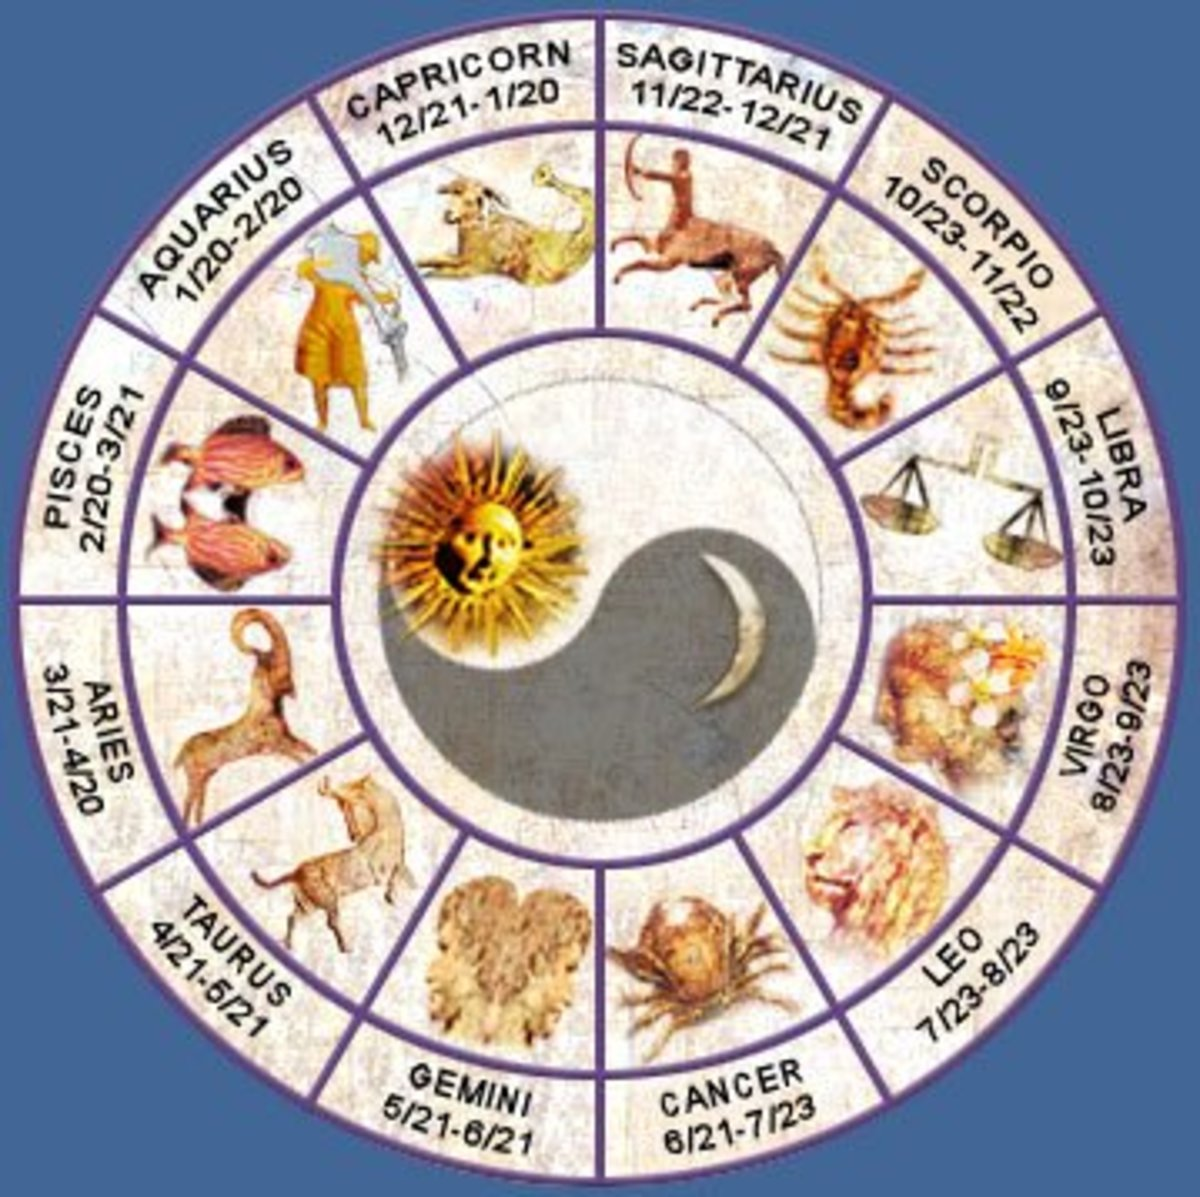 are-we-compatible-how-to-determine-basic-compatibility-using-astrology